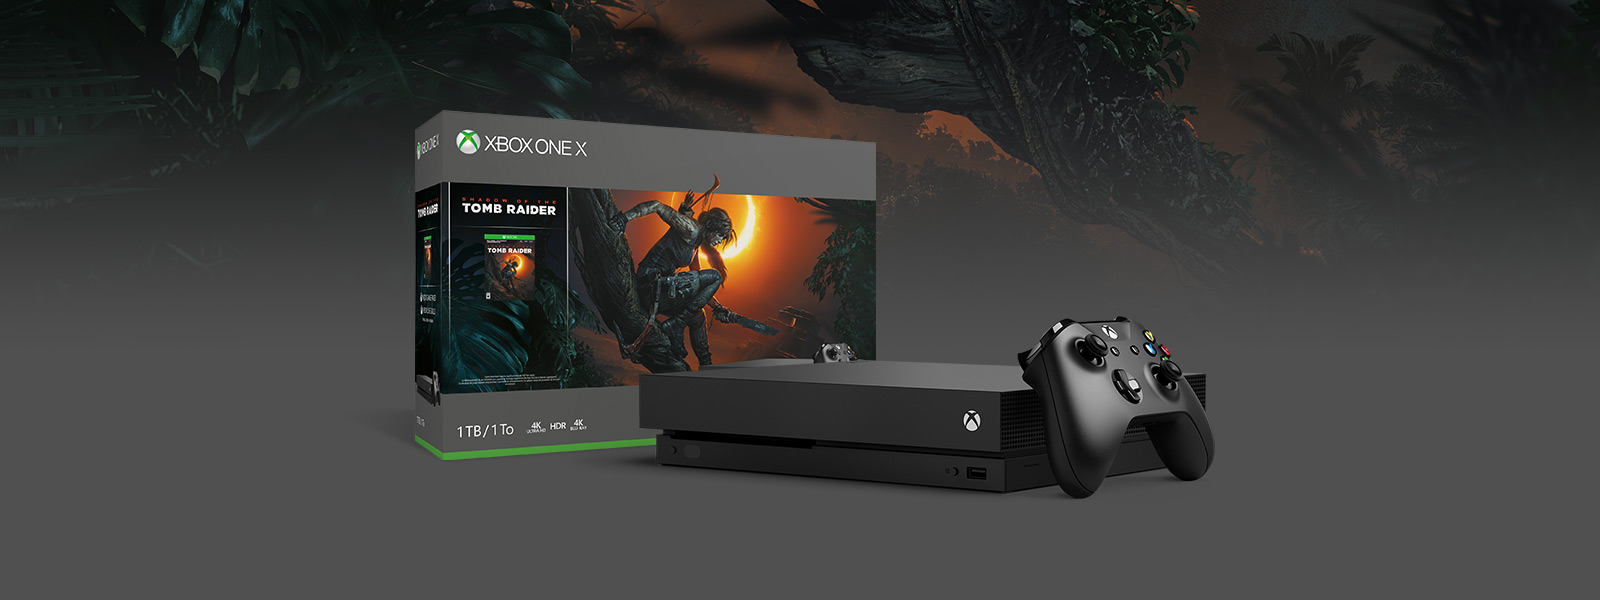 Box and console shot of Xbox One X Shadow of the Tomb Raider Bundle (1TB), background of in game forest